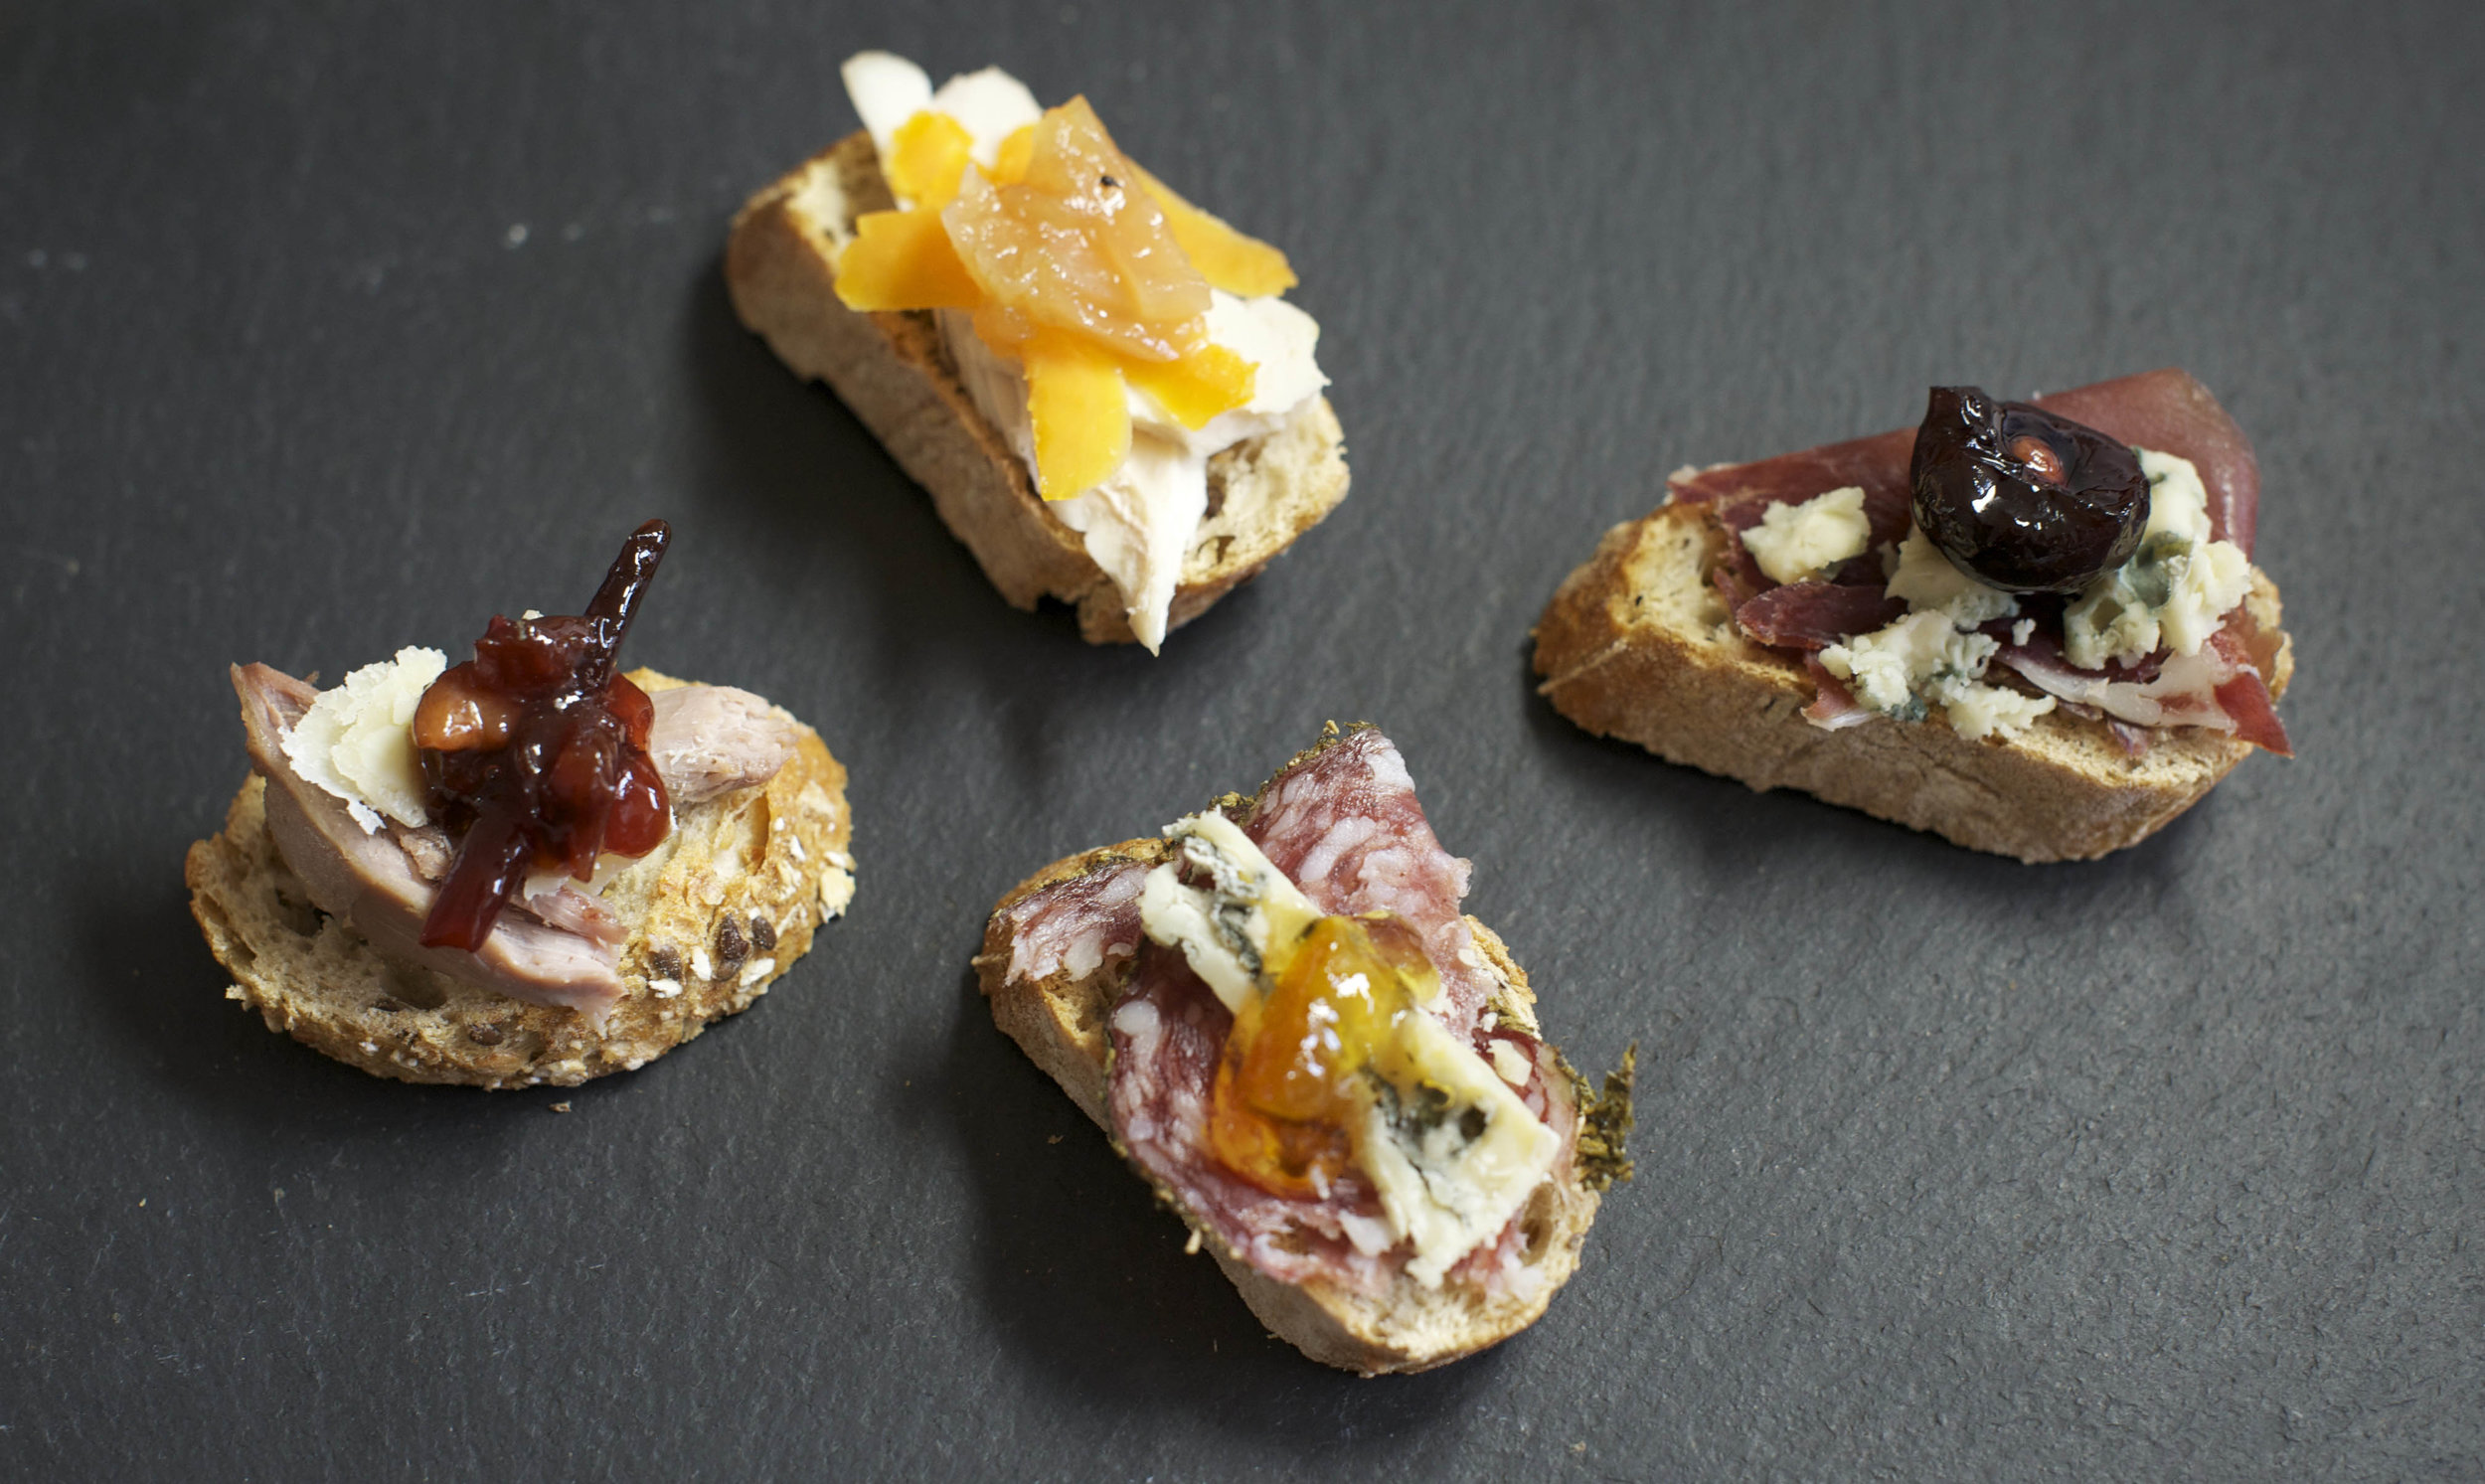 Smy Goodness canapes - (from left) Roast duck, parmesan and plum gumbo; Chicken, Red leicester and apple and pepper chutney; Salami, gorgonzola and Seville orange marmalade; Prosciutto, gorgonzola and black cherry and black pepper compote.